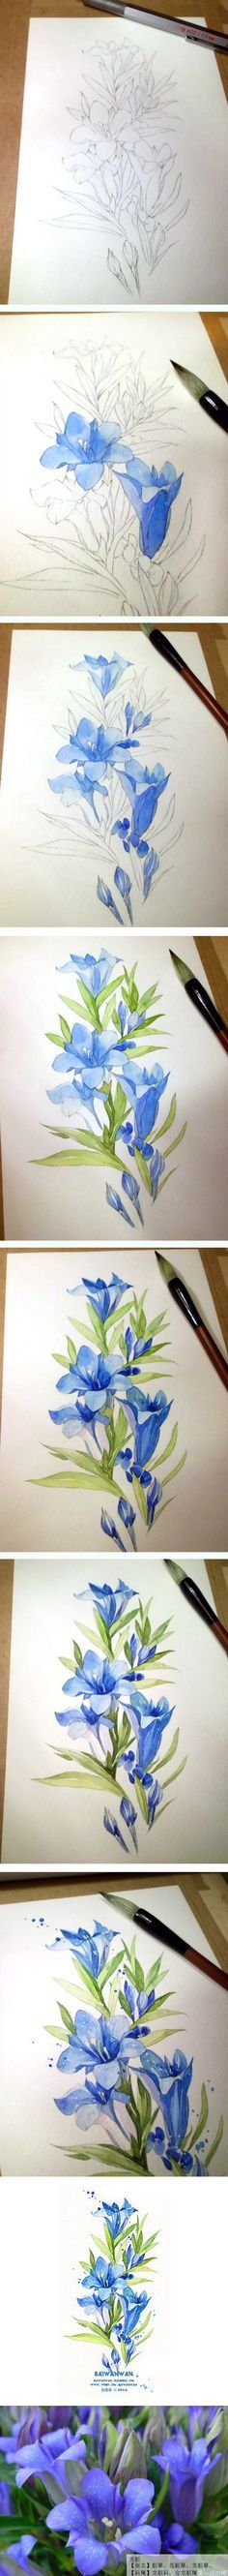 Watercolour/tutorial/flower